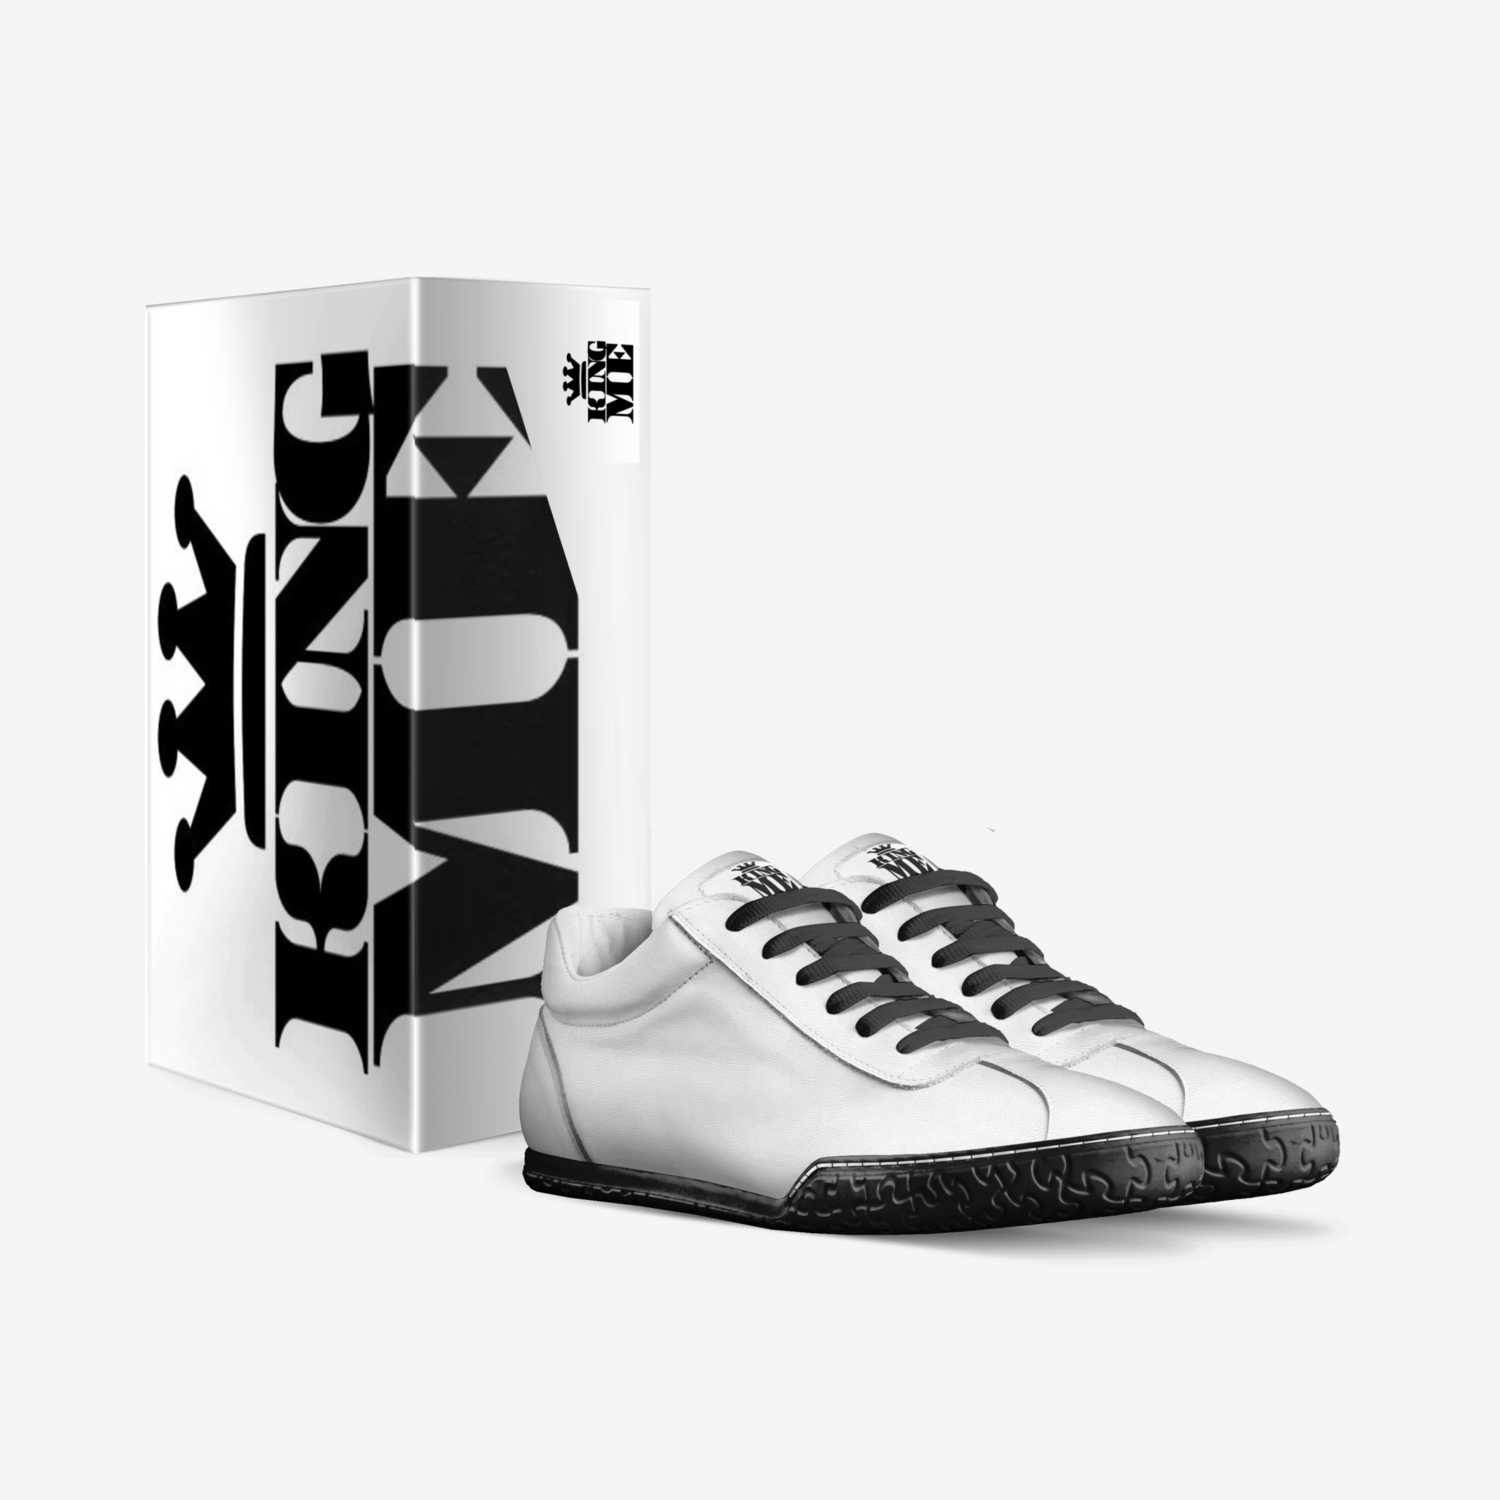 King Me custom made in Italy shoes by Jacob King | Box view